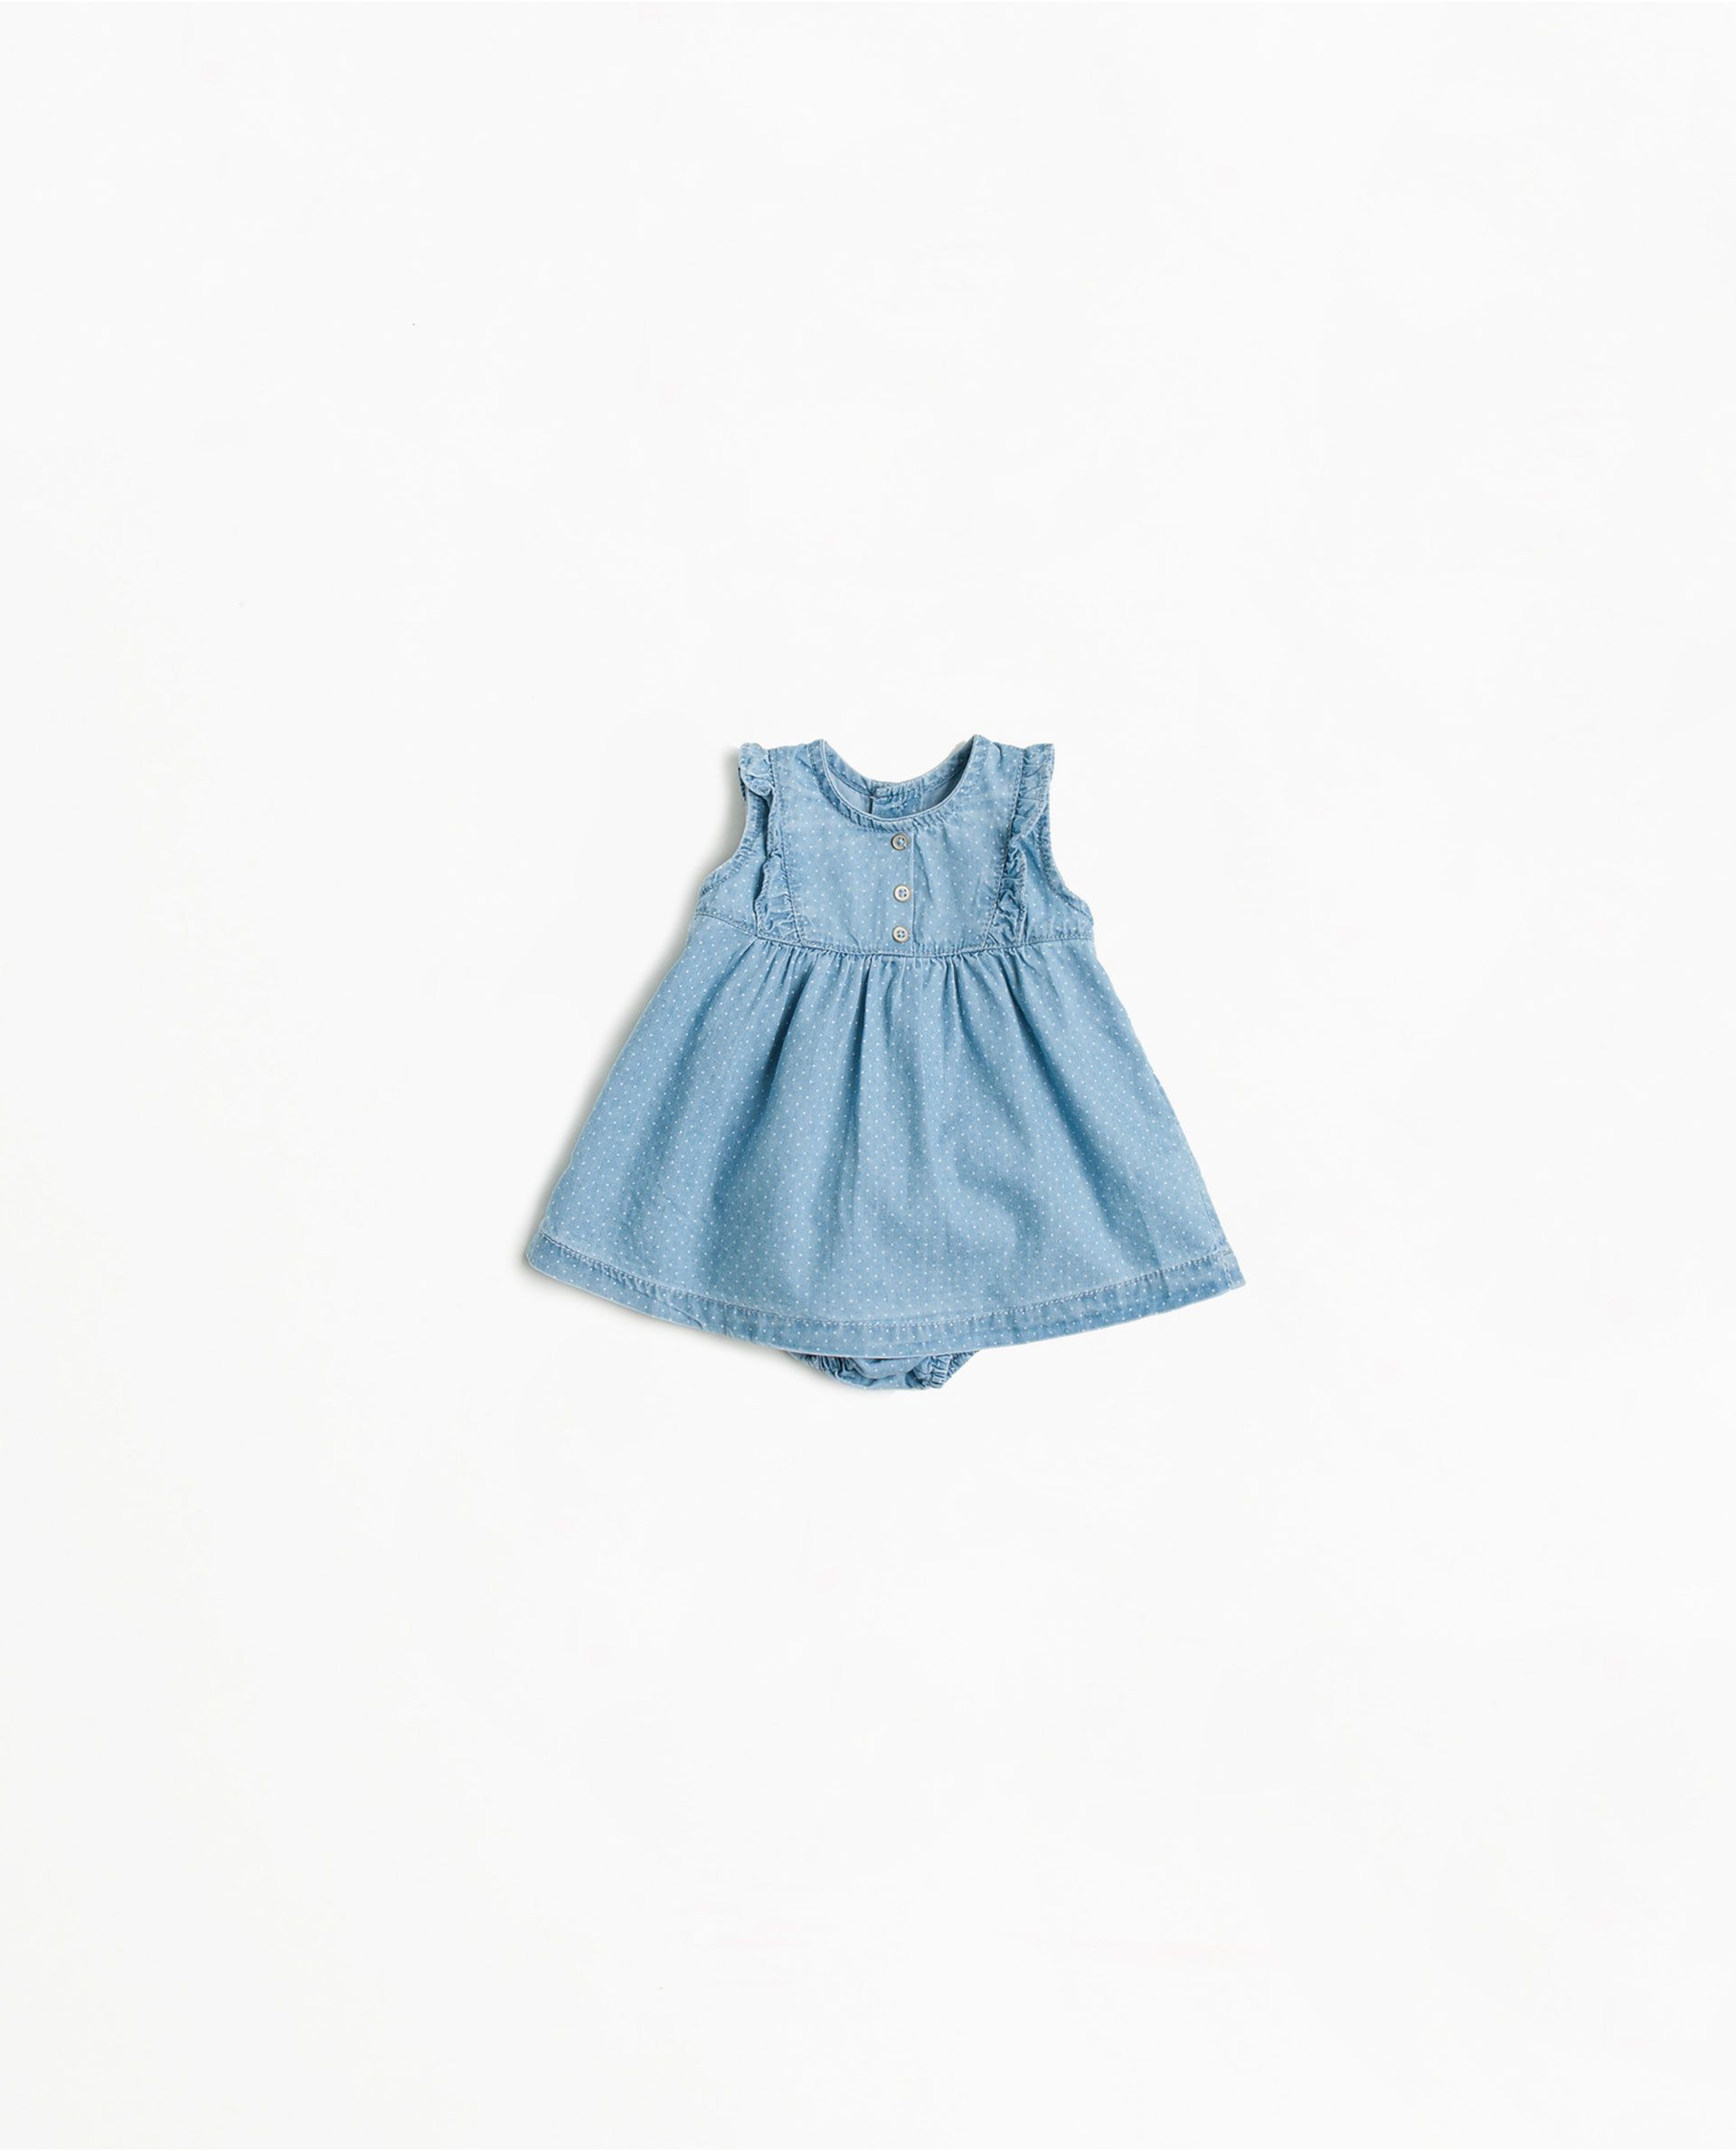 ZARA - MINI - Robe chasuble en denim